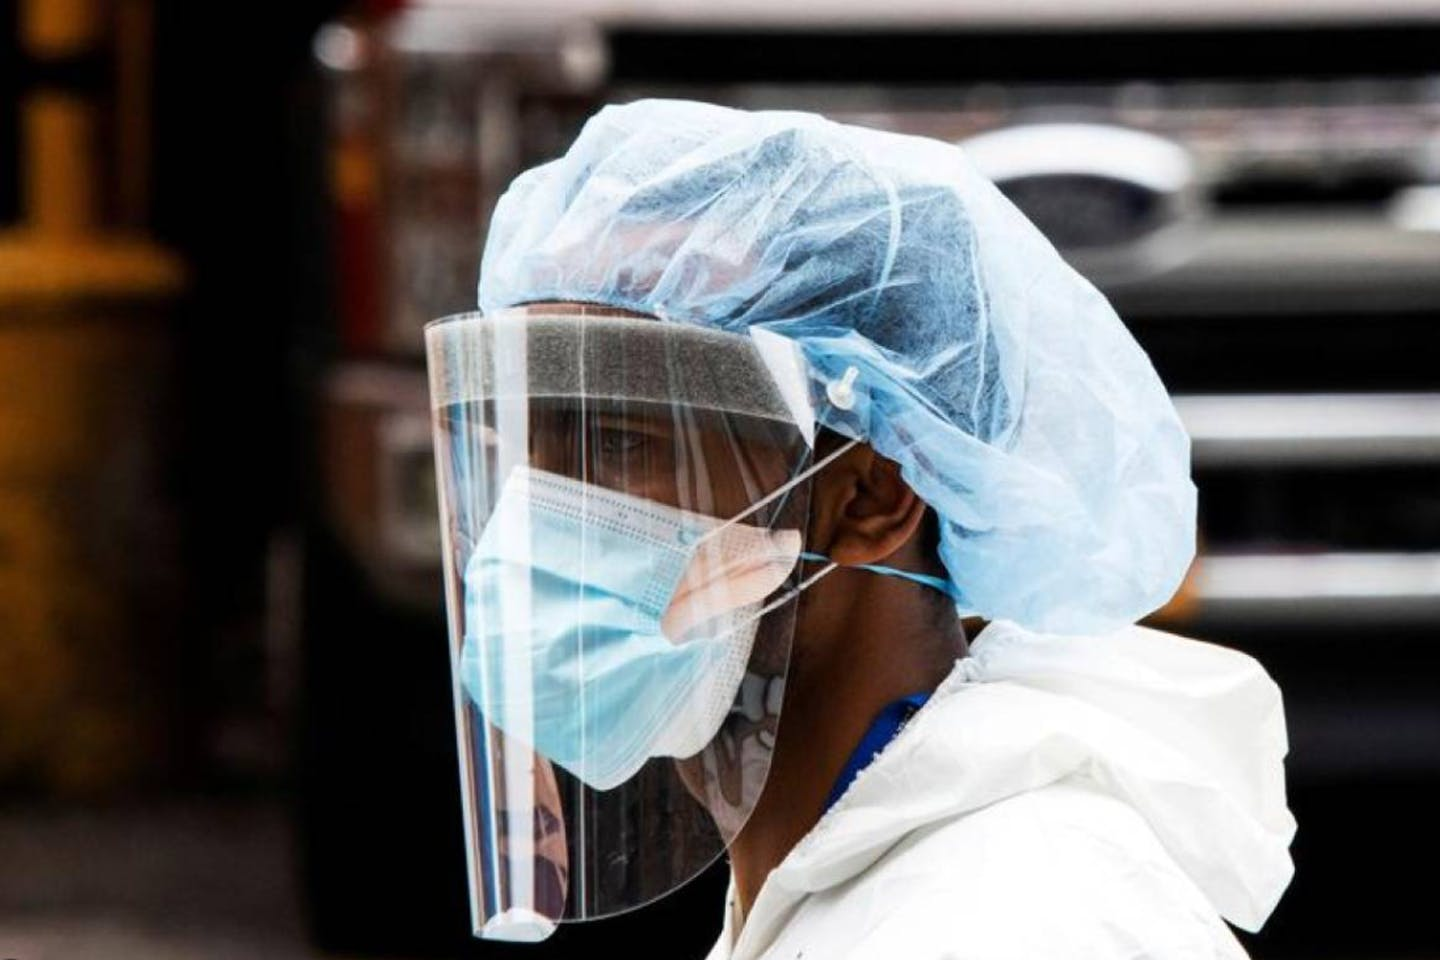 Greener PPE Inventors tackle Covid-19 plastic waste mountain